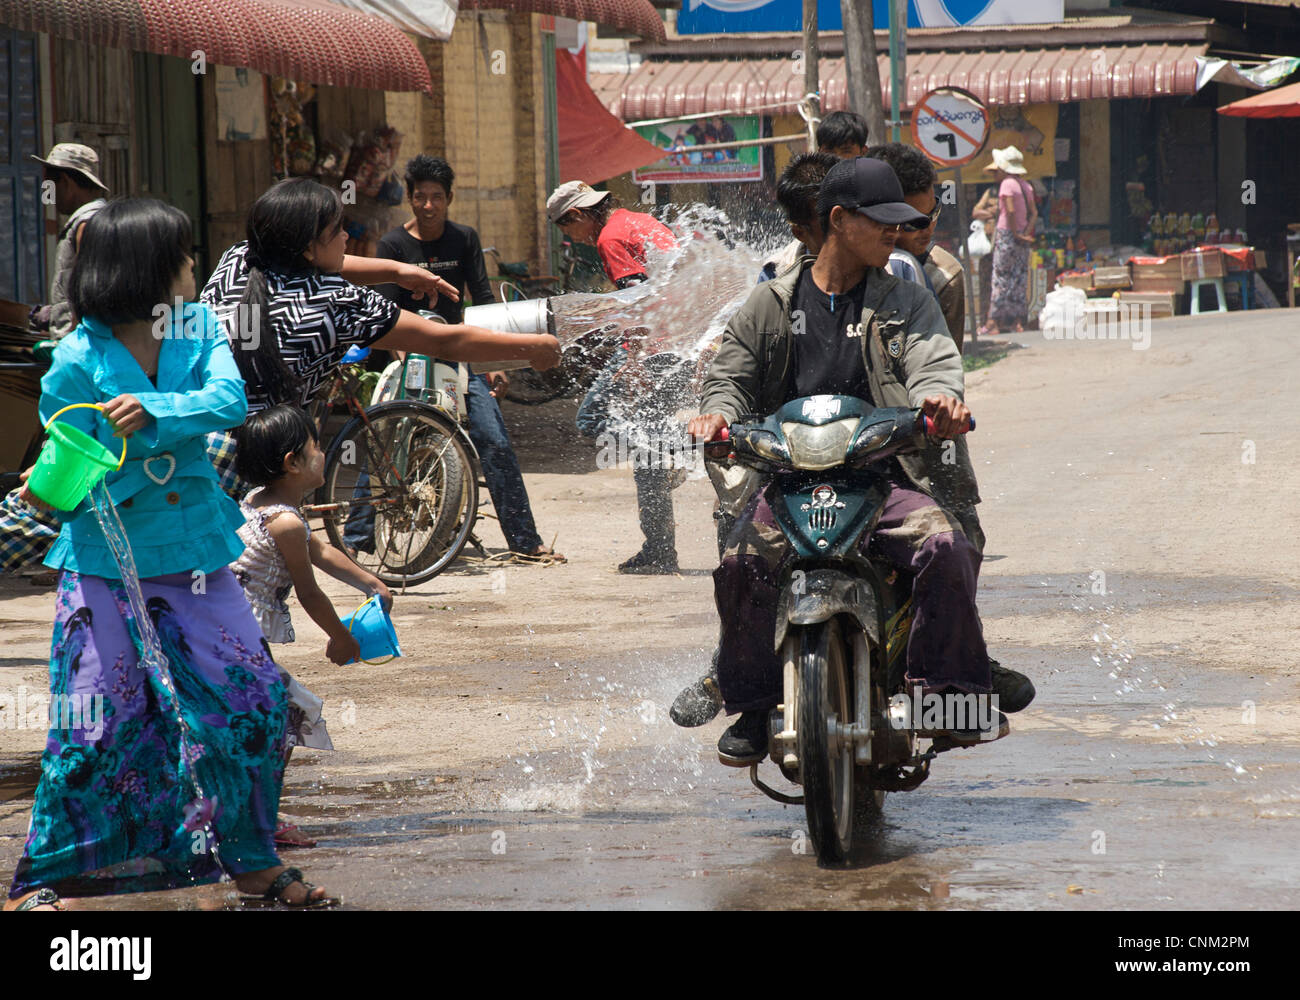 Burmese girls enjoying the water festival by throwing a bucket of water at a passing motorcyclist. Kalaw, Burma. - Stock Image